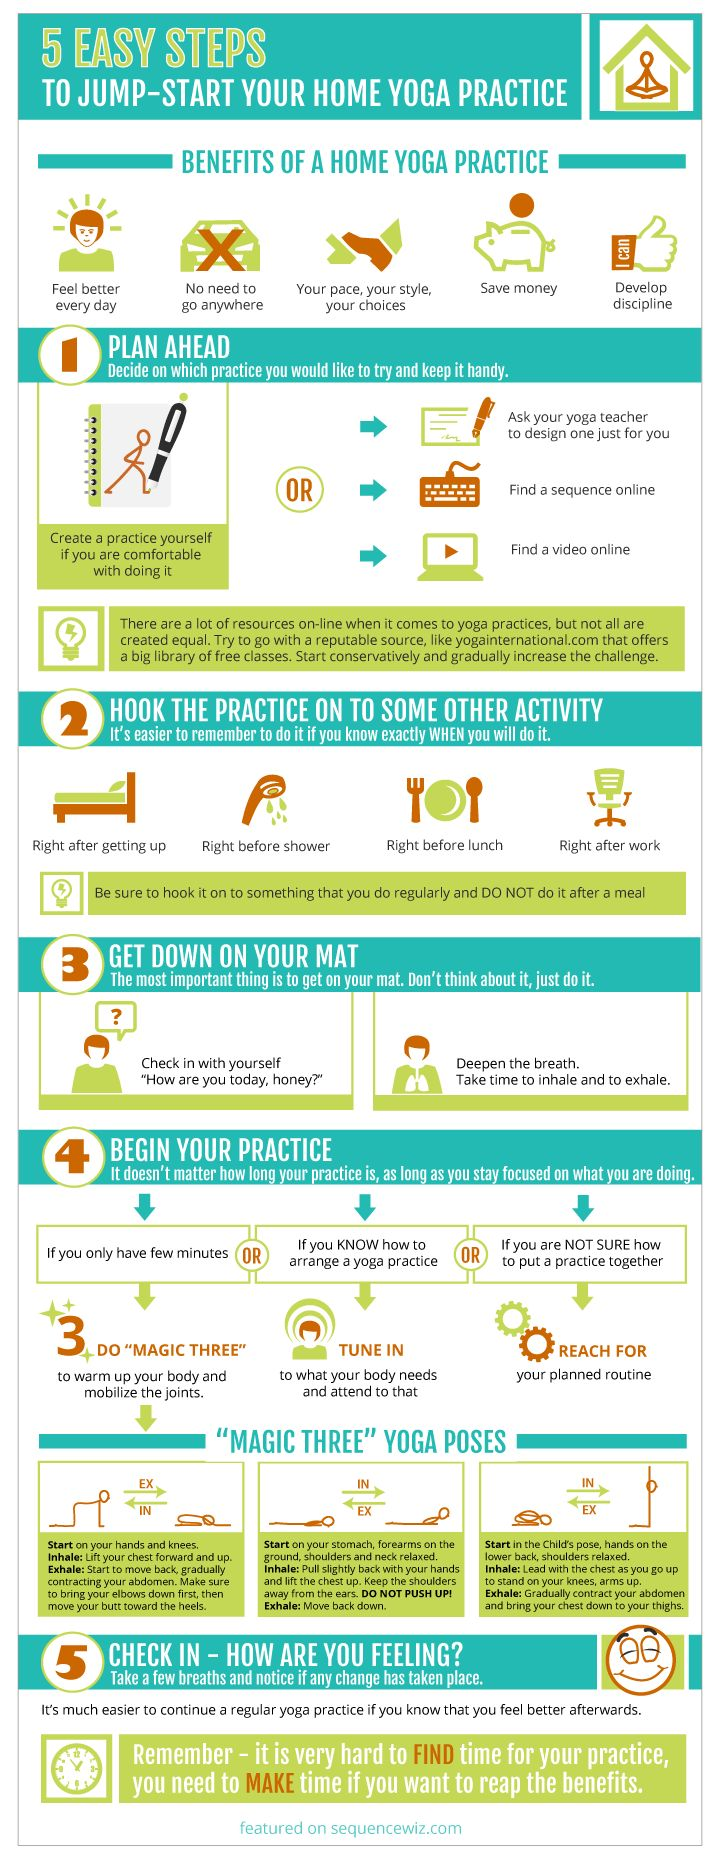 How to begin a home yoga practice